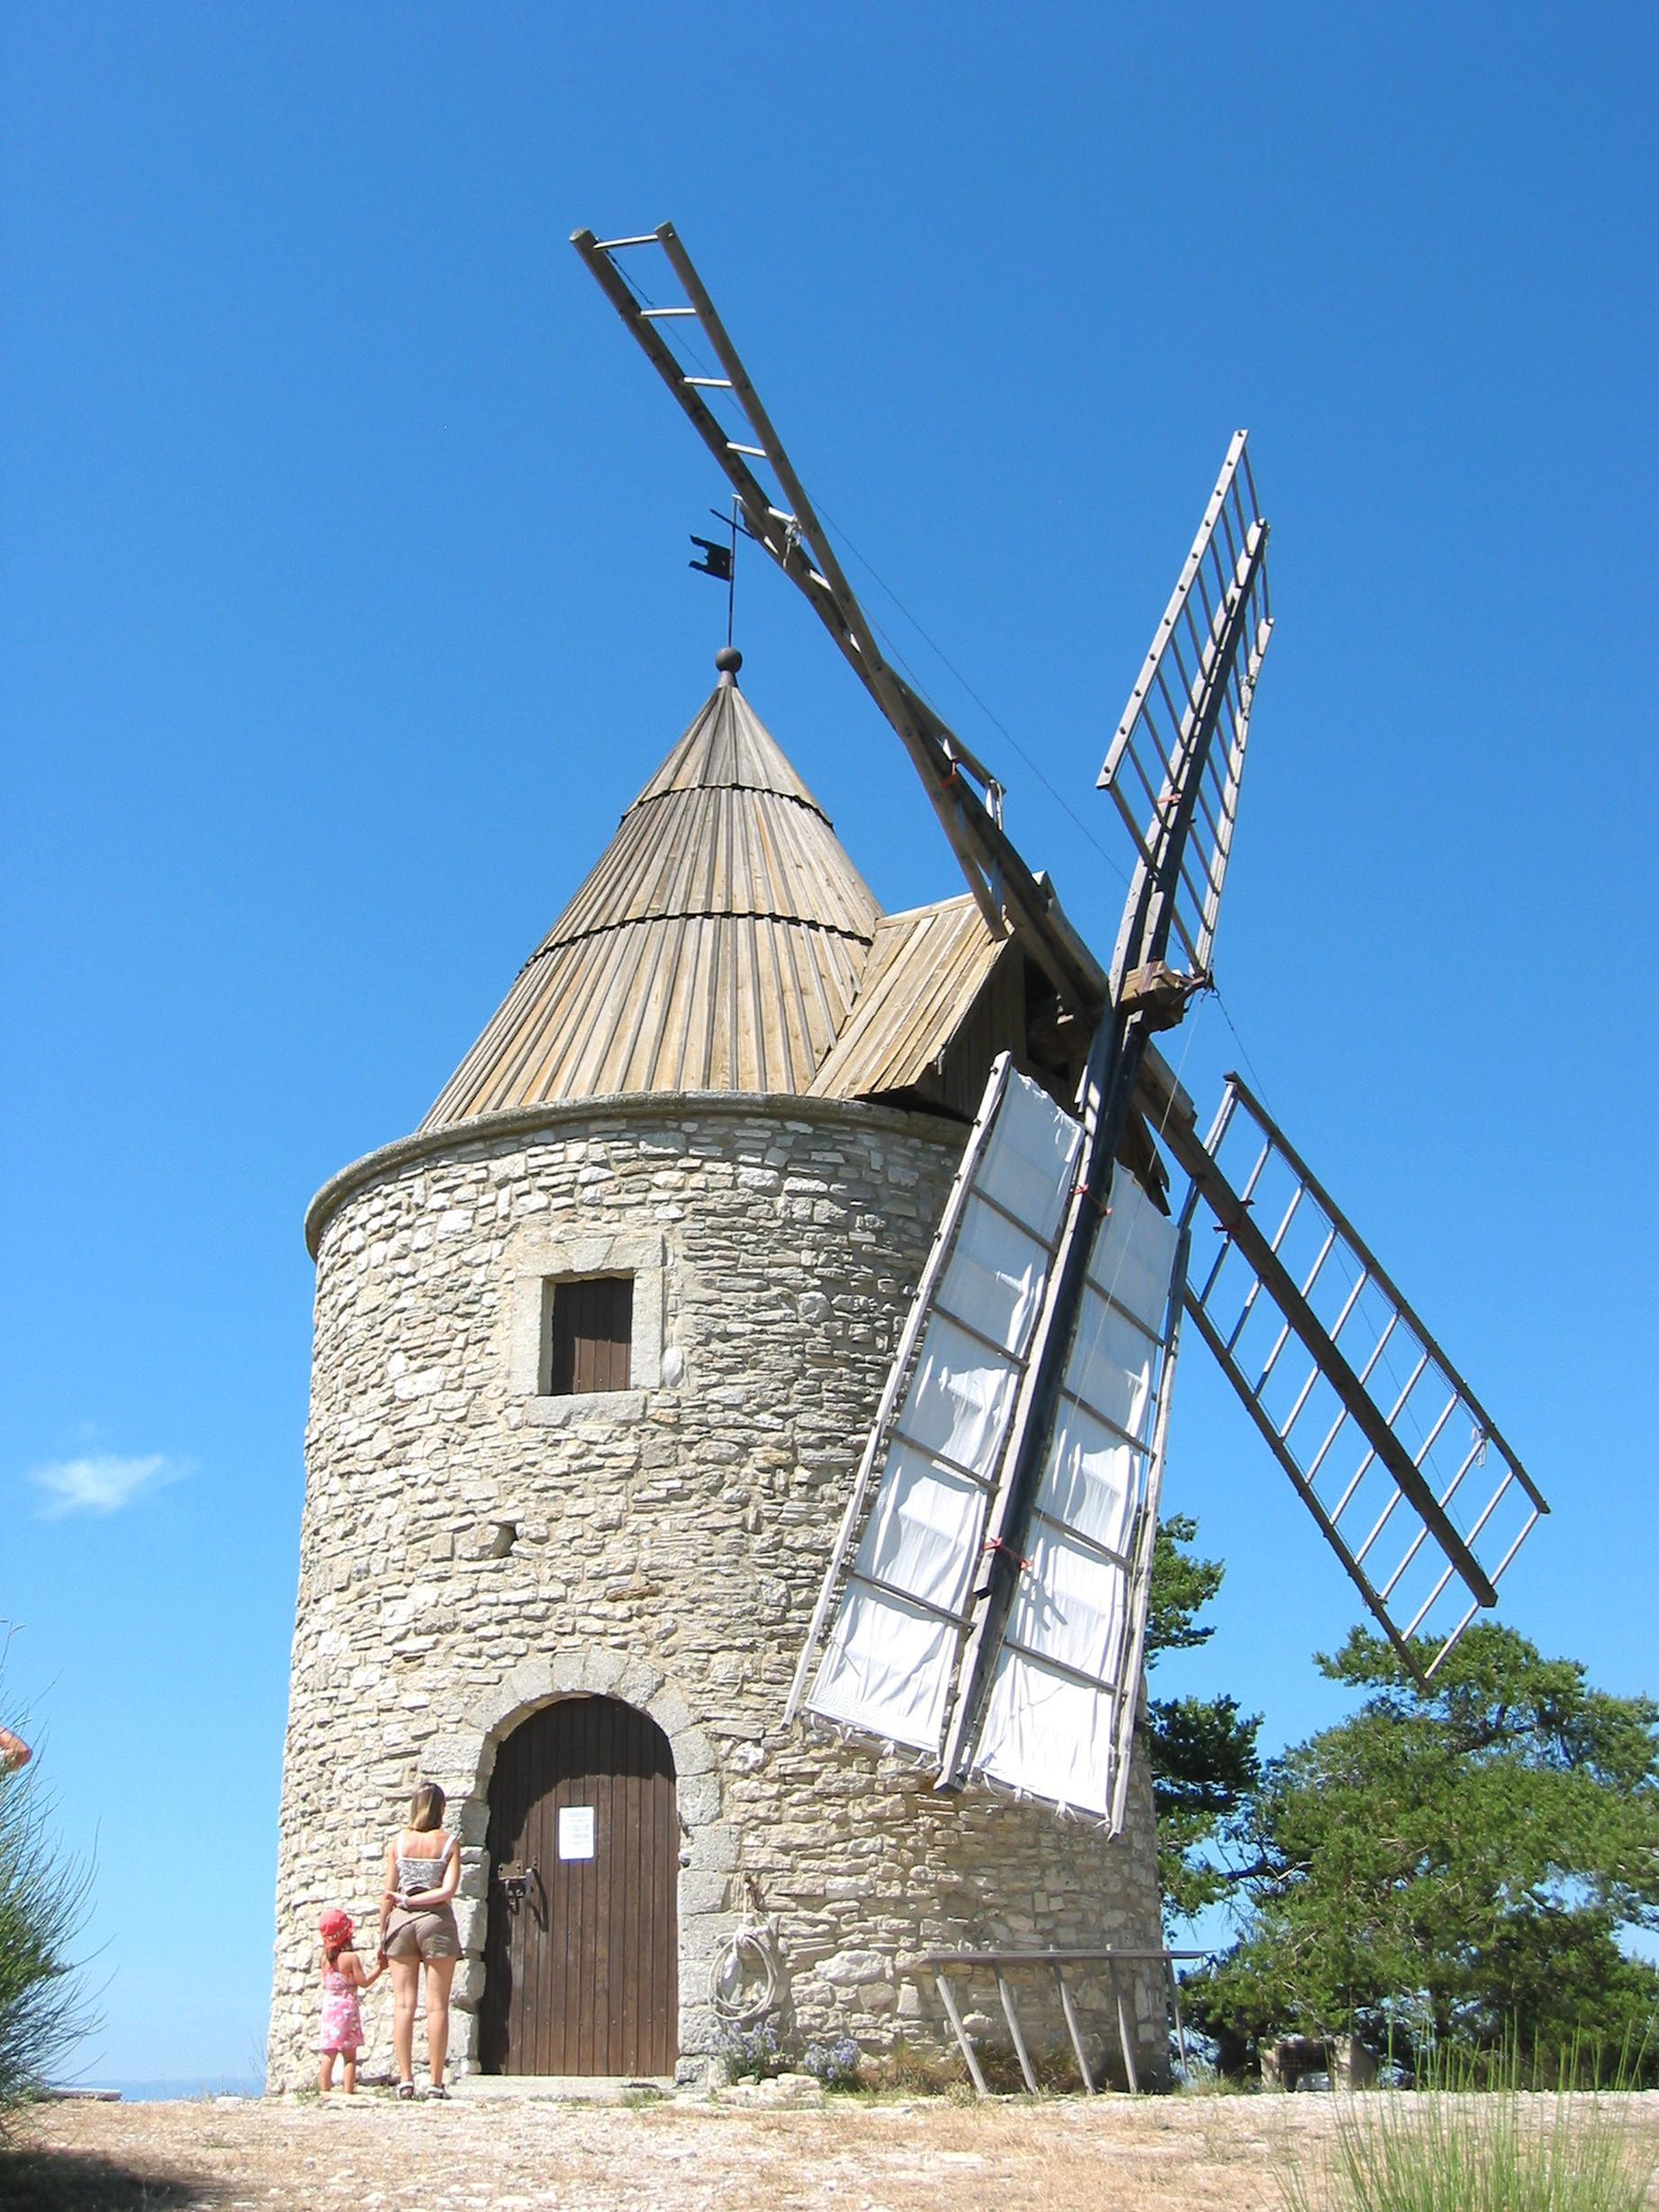 moulin d'occasion